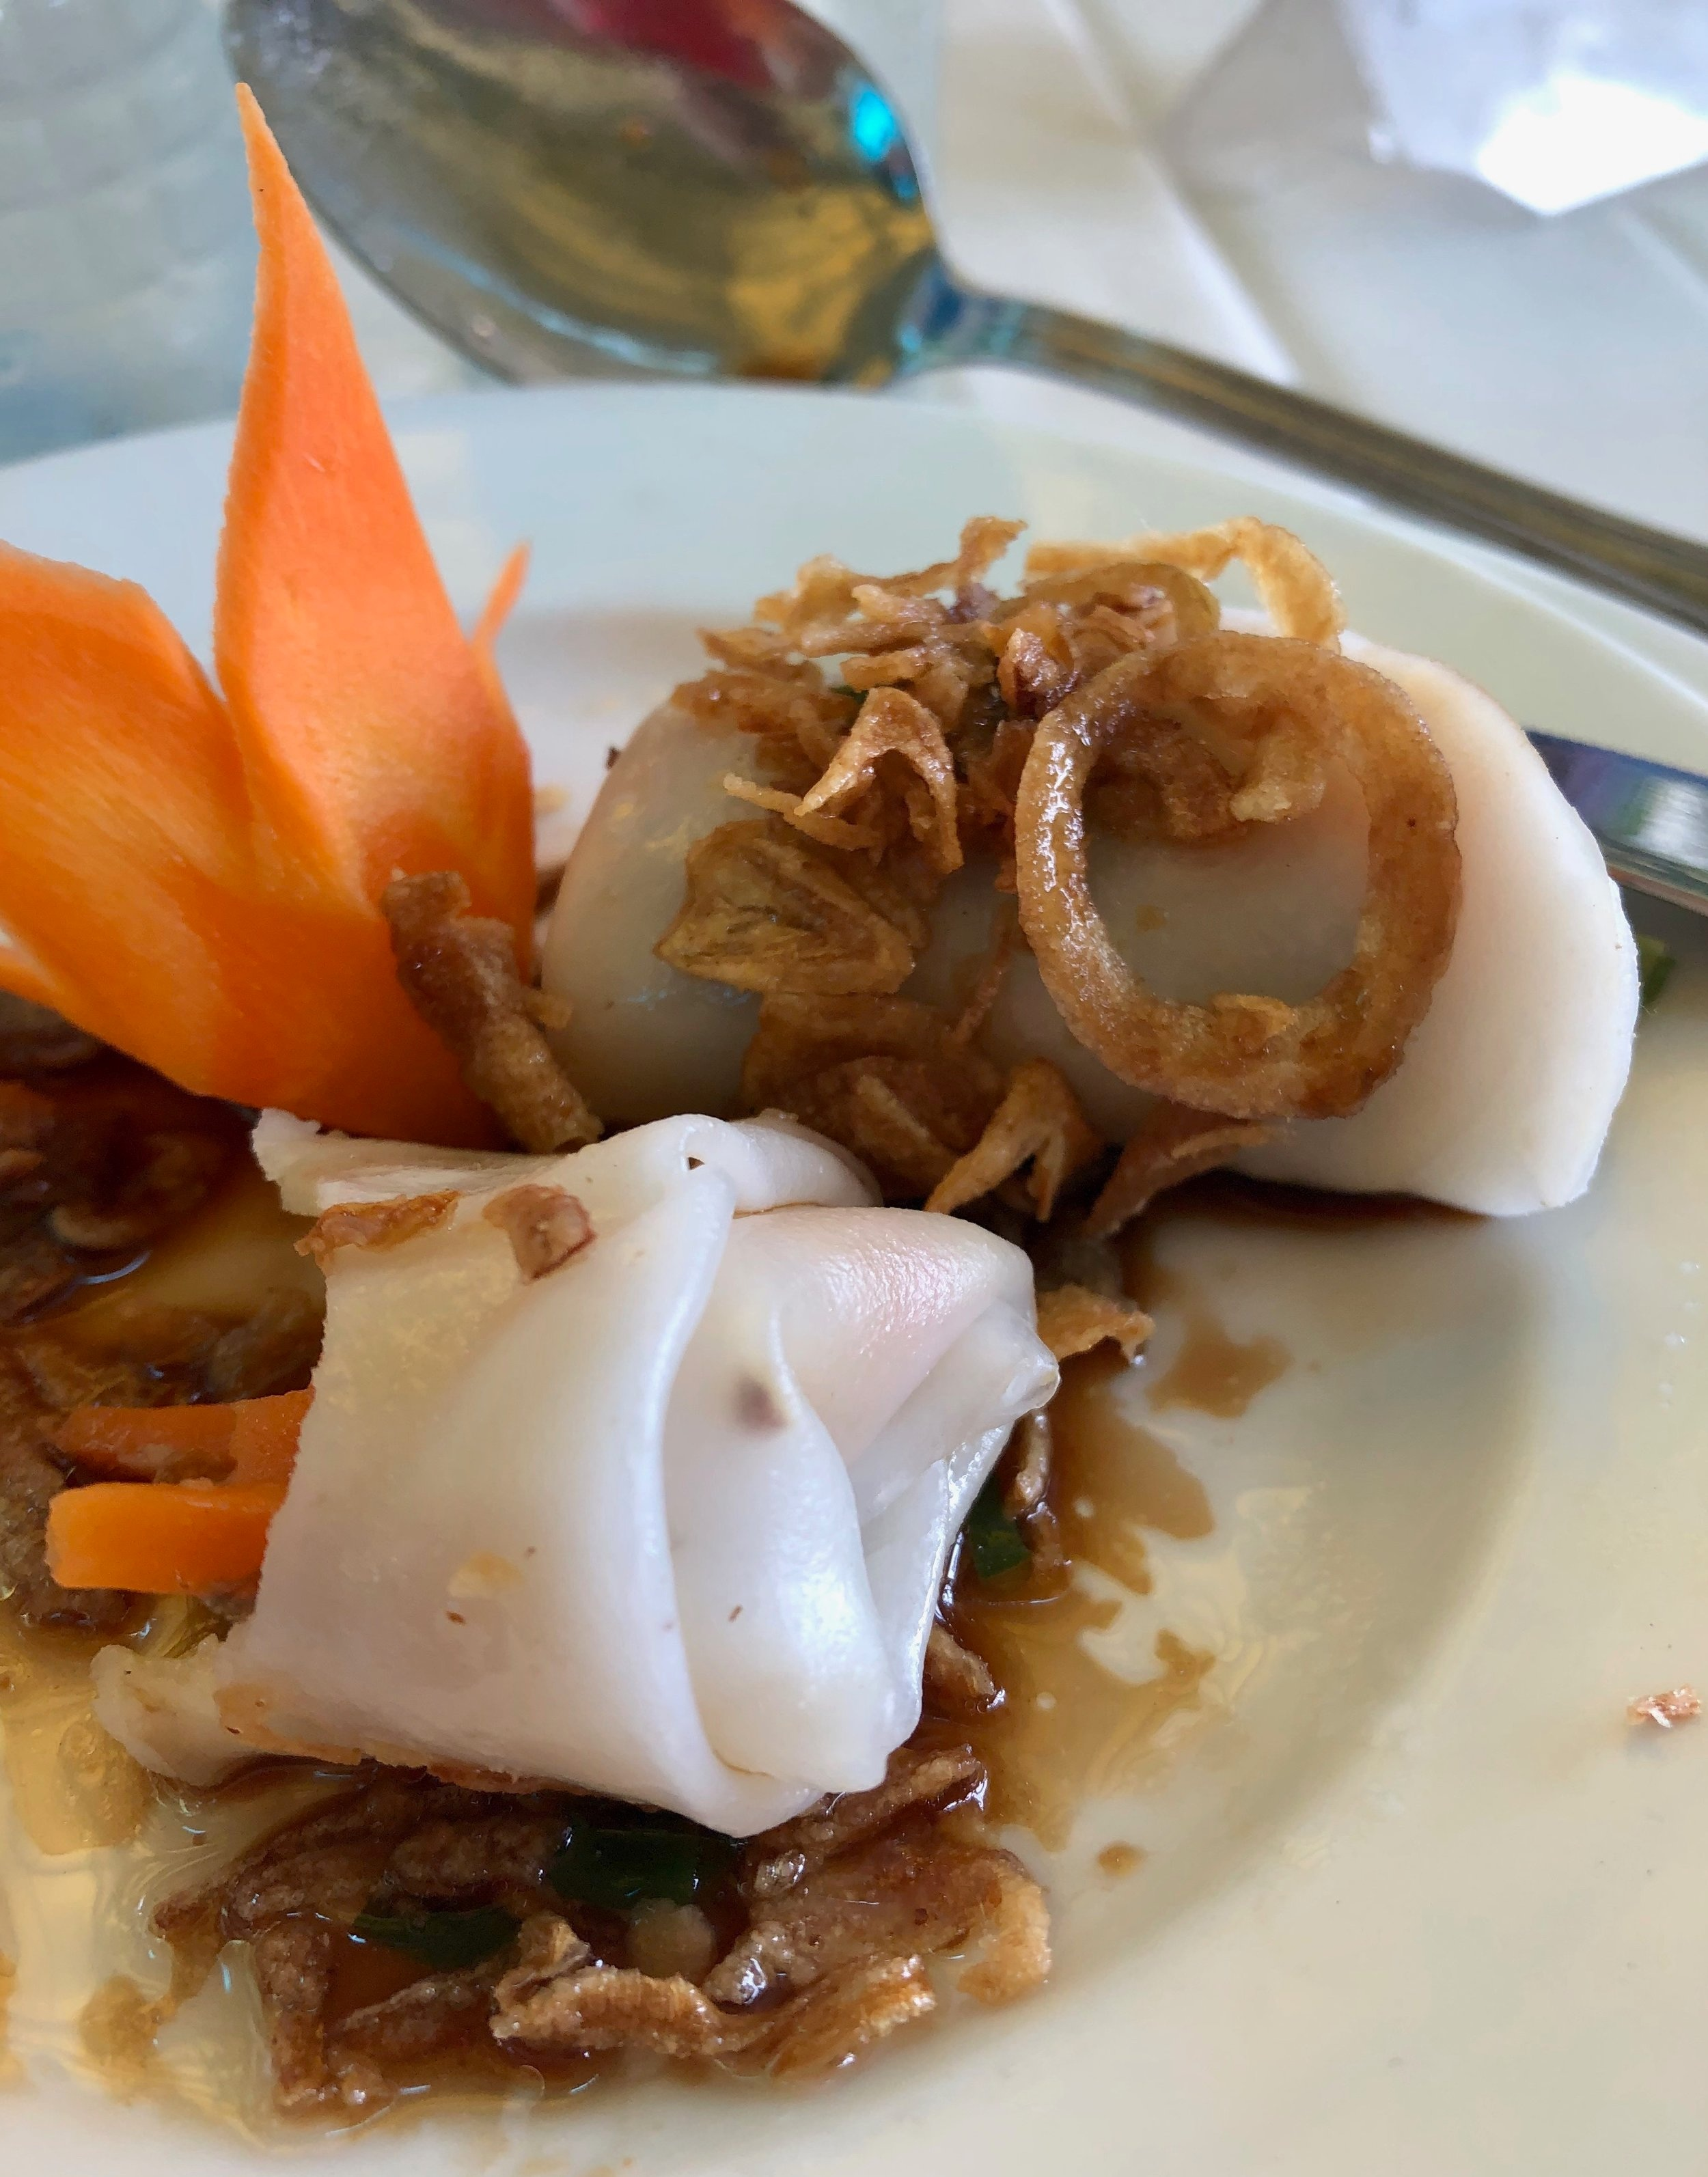 These spring rolls were my favorite style—a bit doughier than average with a fried shallot sauce.